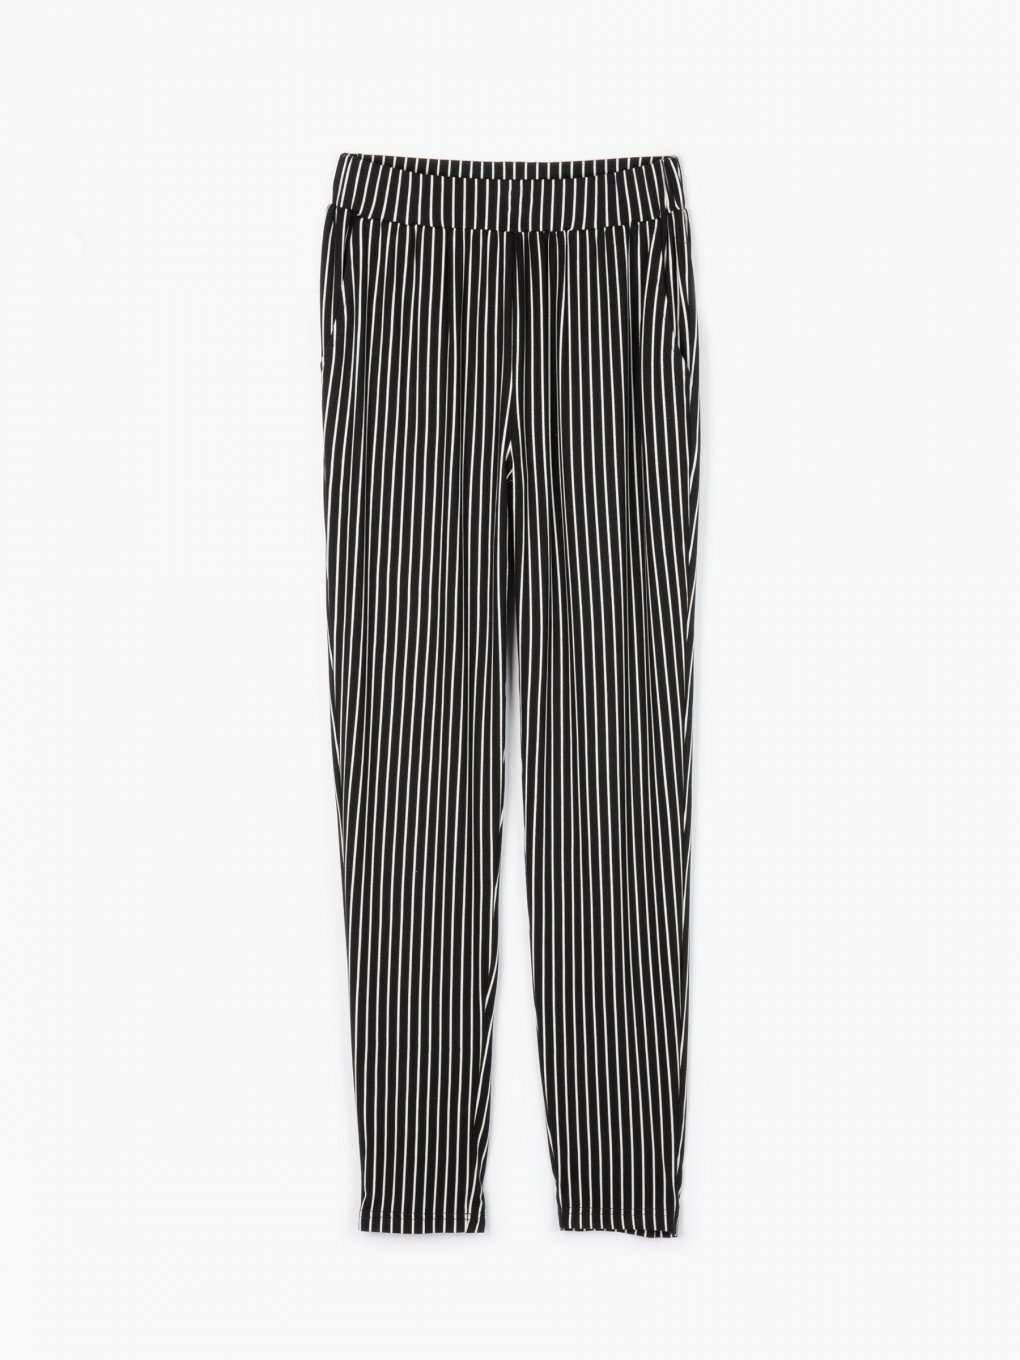 Striped elastic trousers